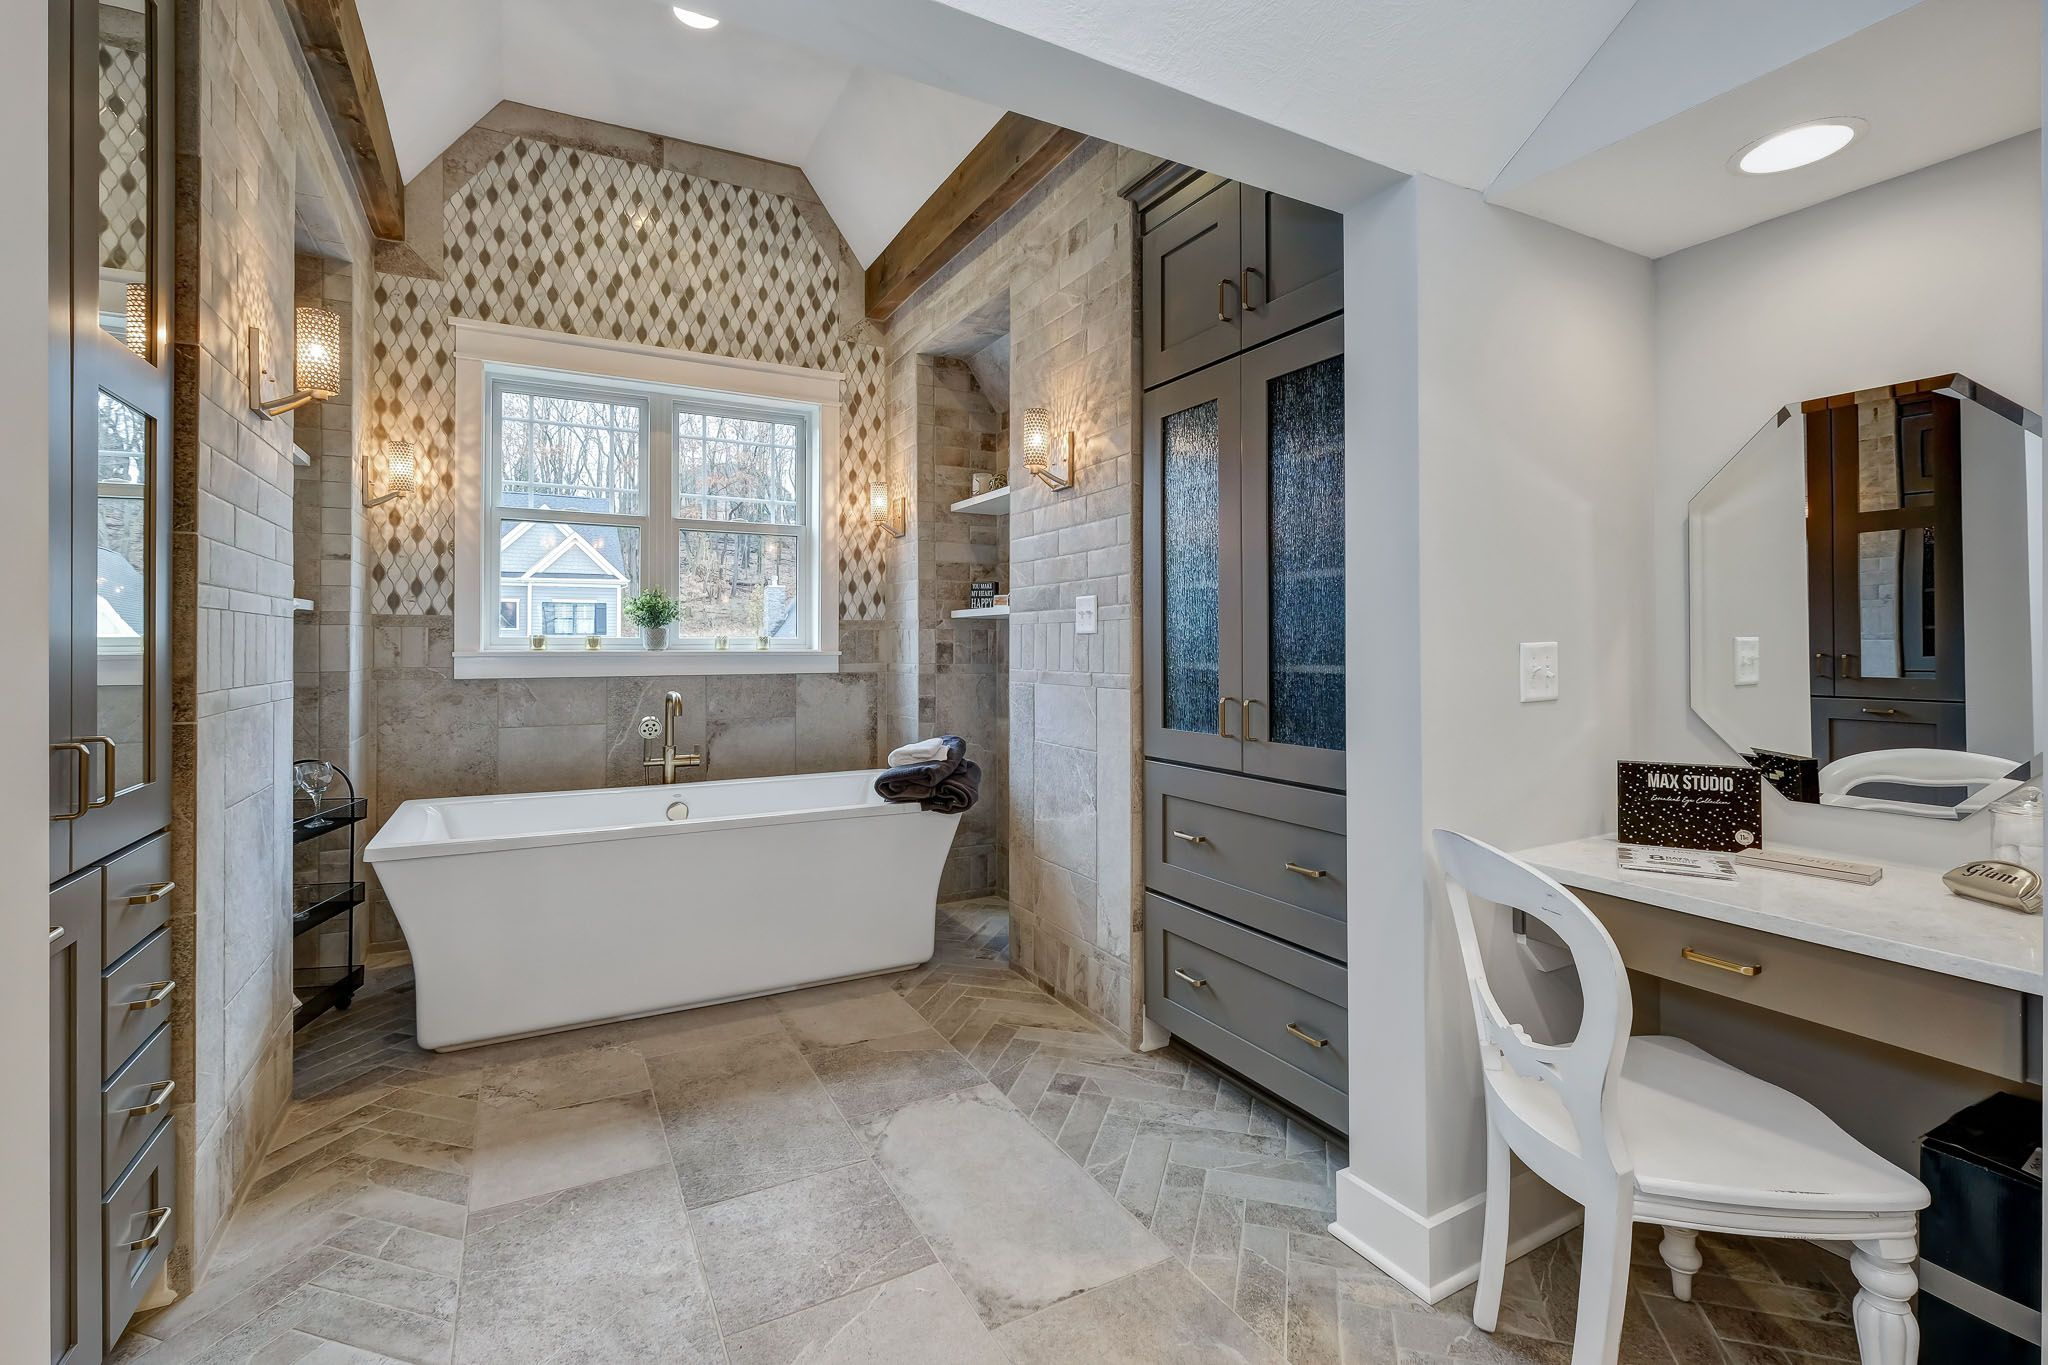 Bathroom featured in the Austin By Infinity Custom Homes in Pittsburgh, PA